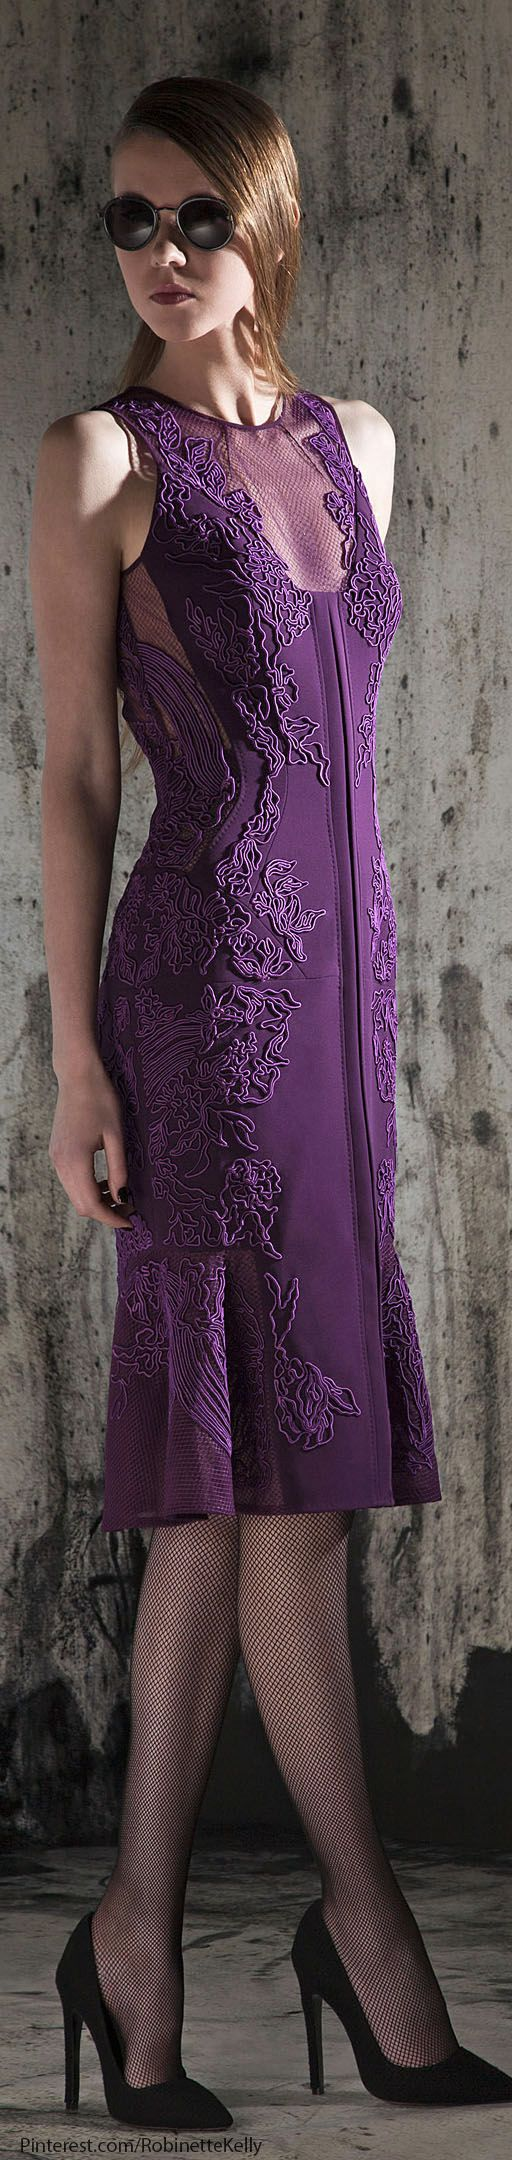 Purple dresses to wear to a wedding   best They Called Her Pinky images on Pinterest  Party dresses